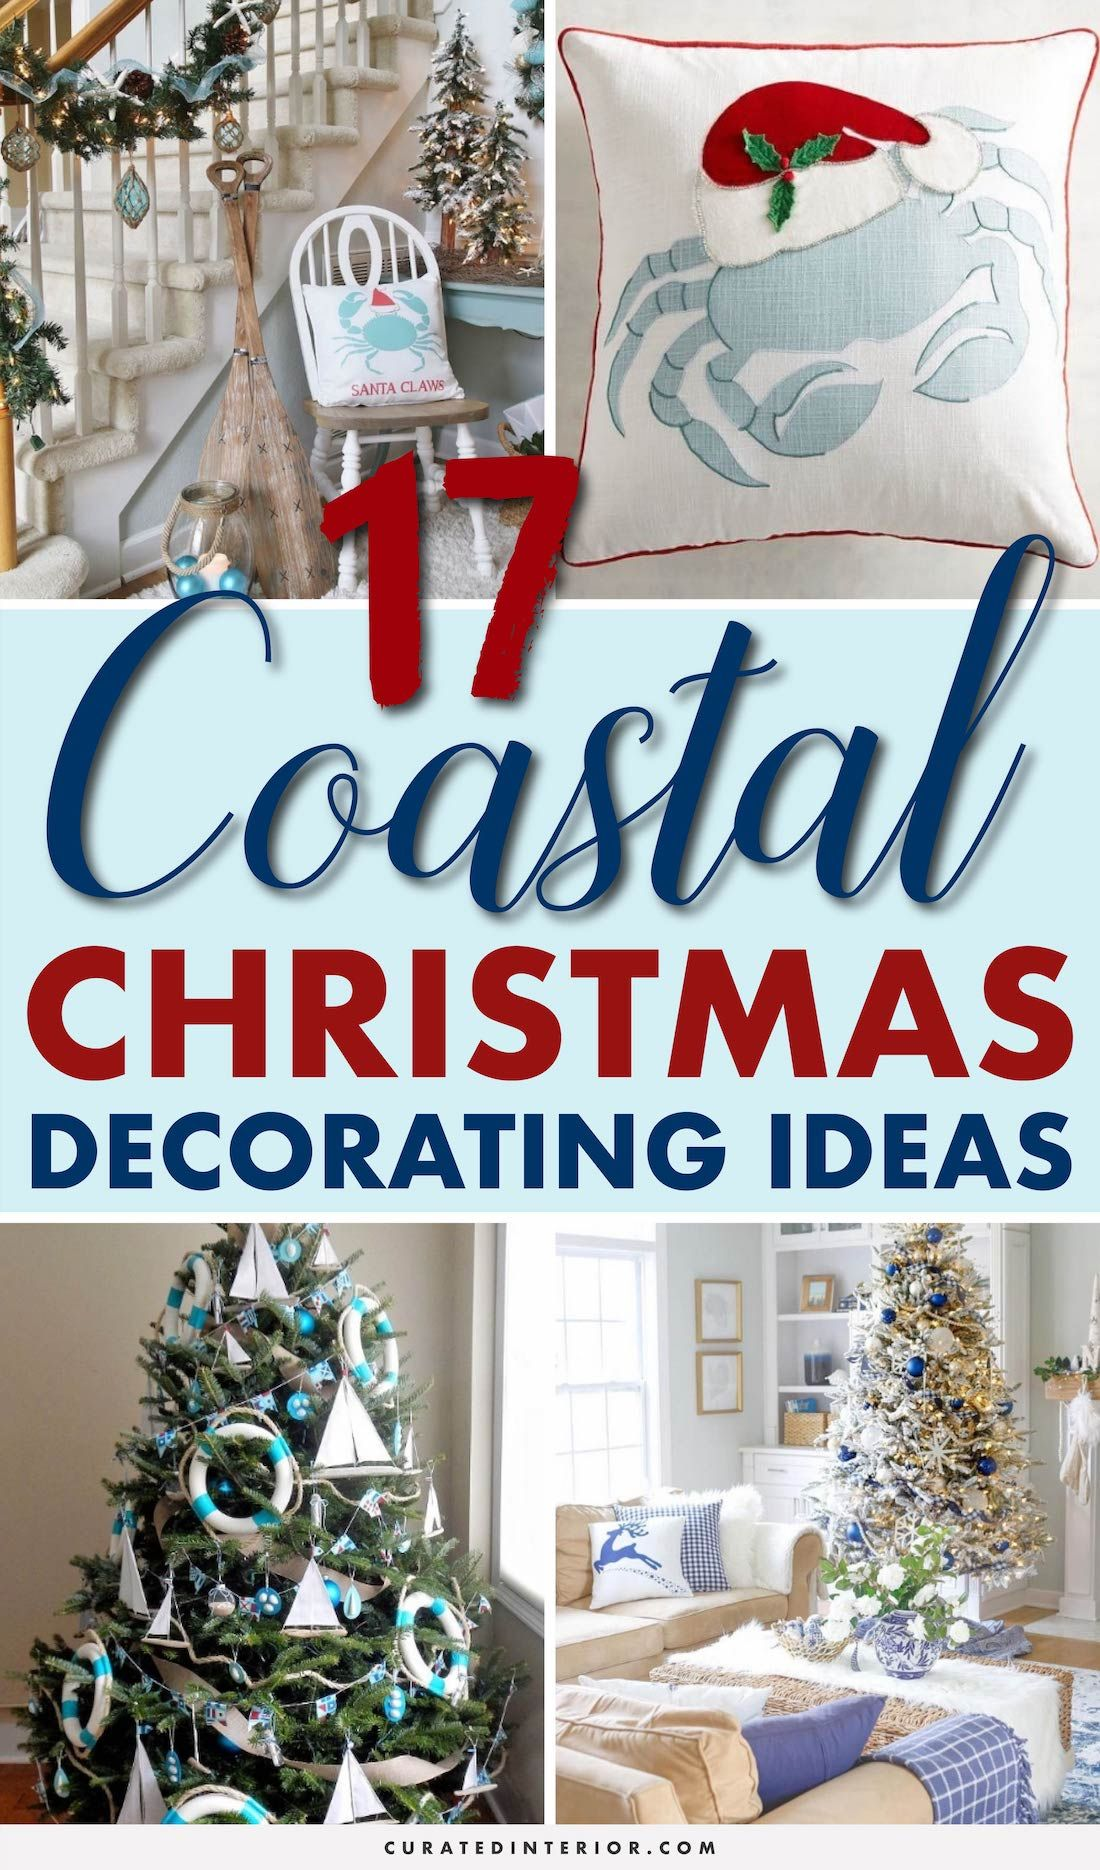 17 Coastal Christmas Decor Ideas